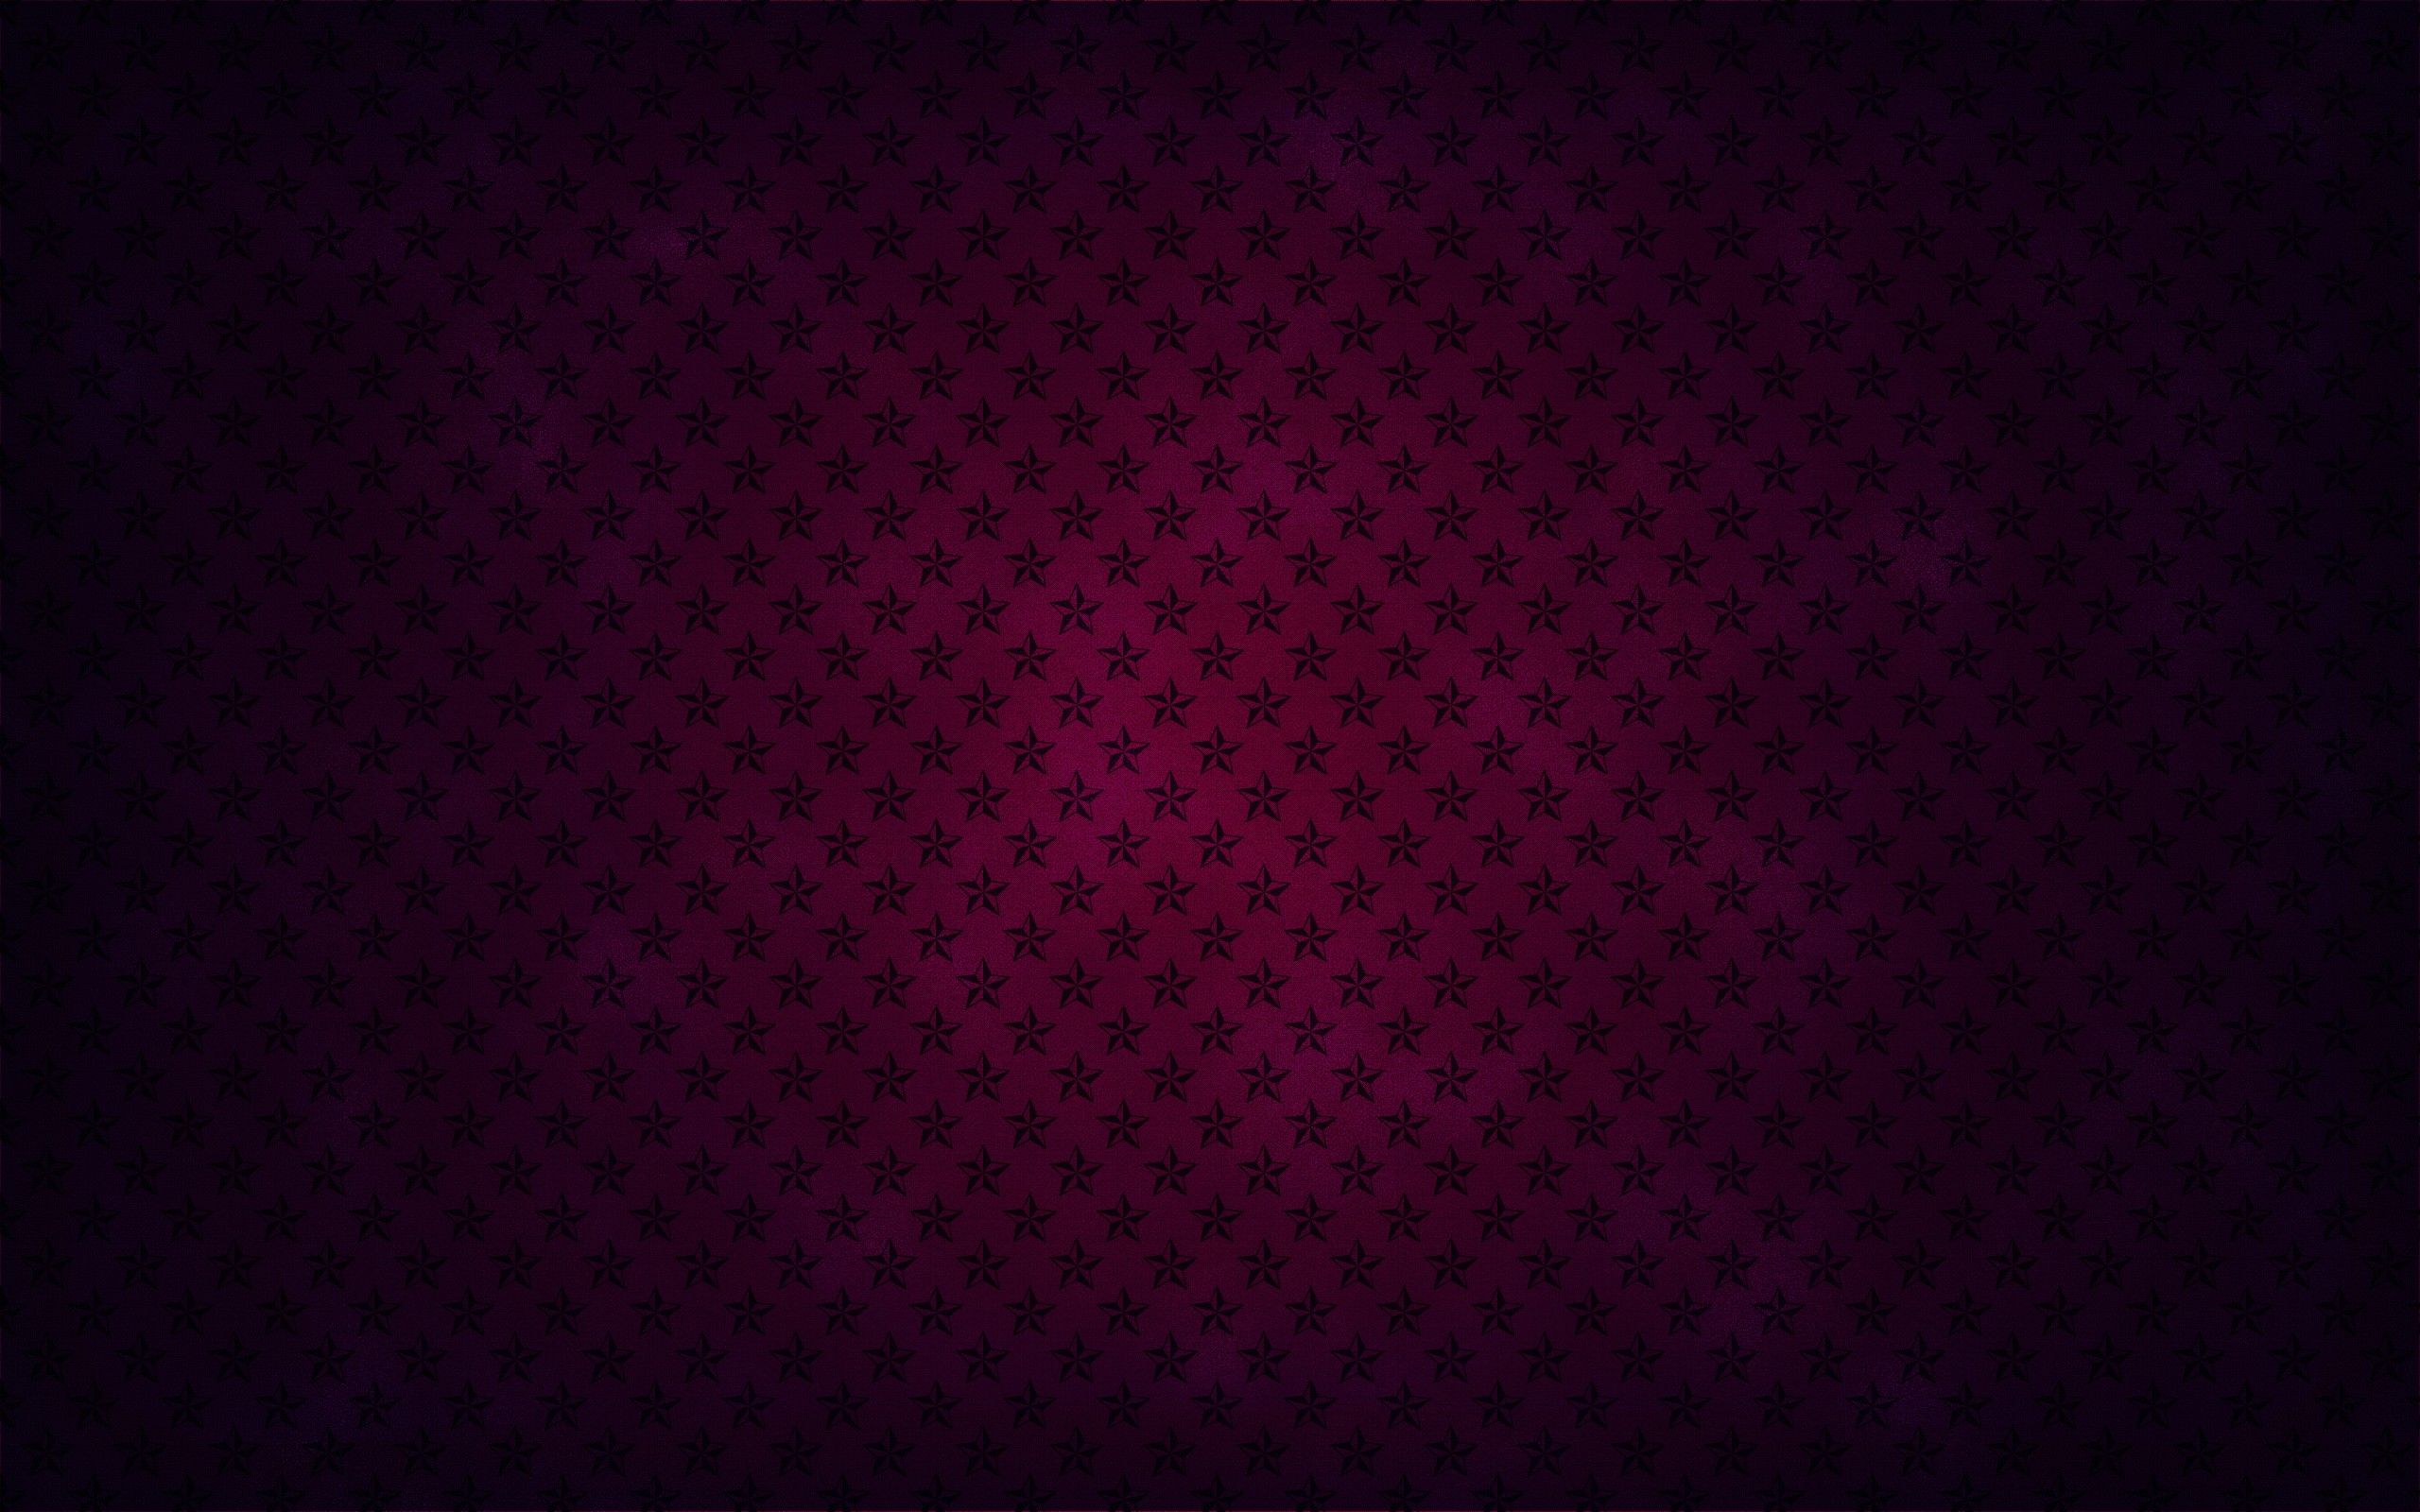 Plain Dark Pink Pictures In 2020 Hd Textures Textured Wallpaper Simple Backgrounds